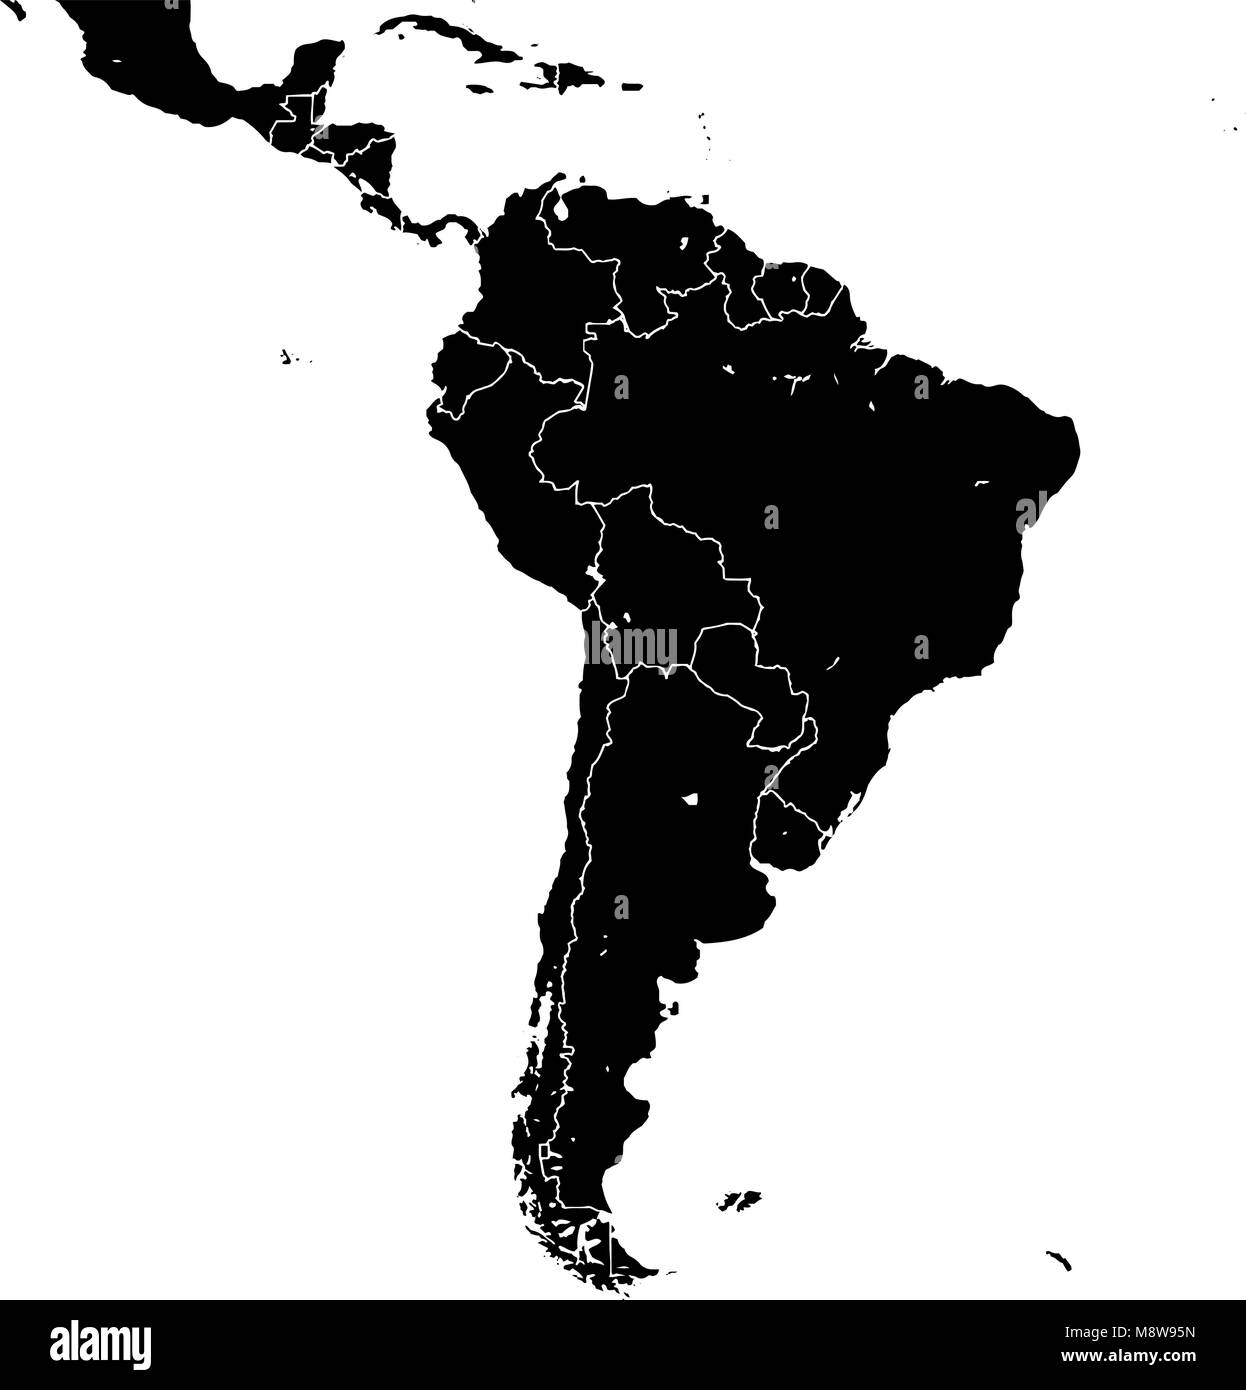 Time Zone Map Black And White: Latin America Map Vector Stock Photos & Latin America Map